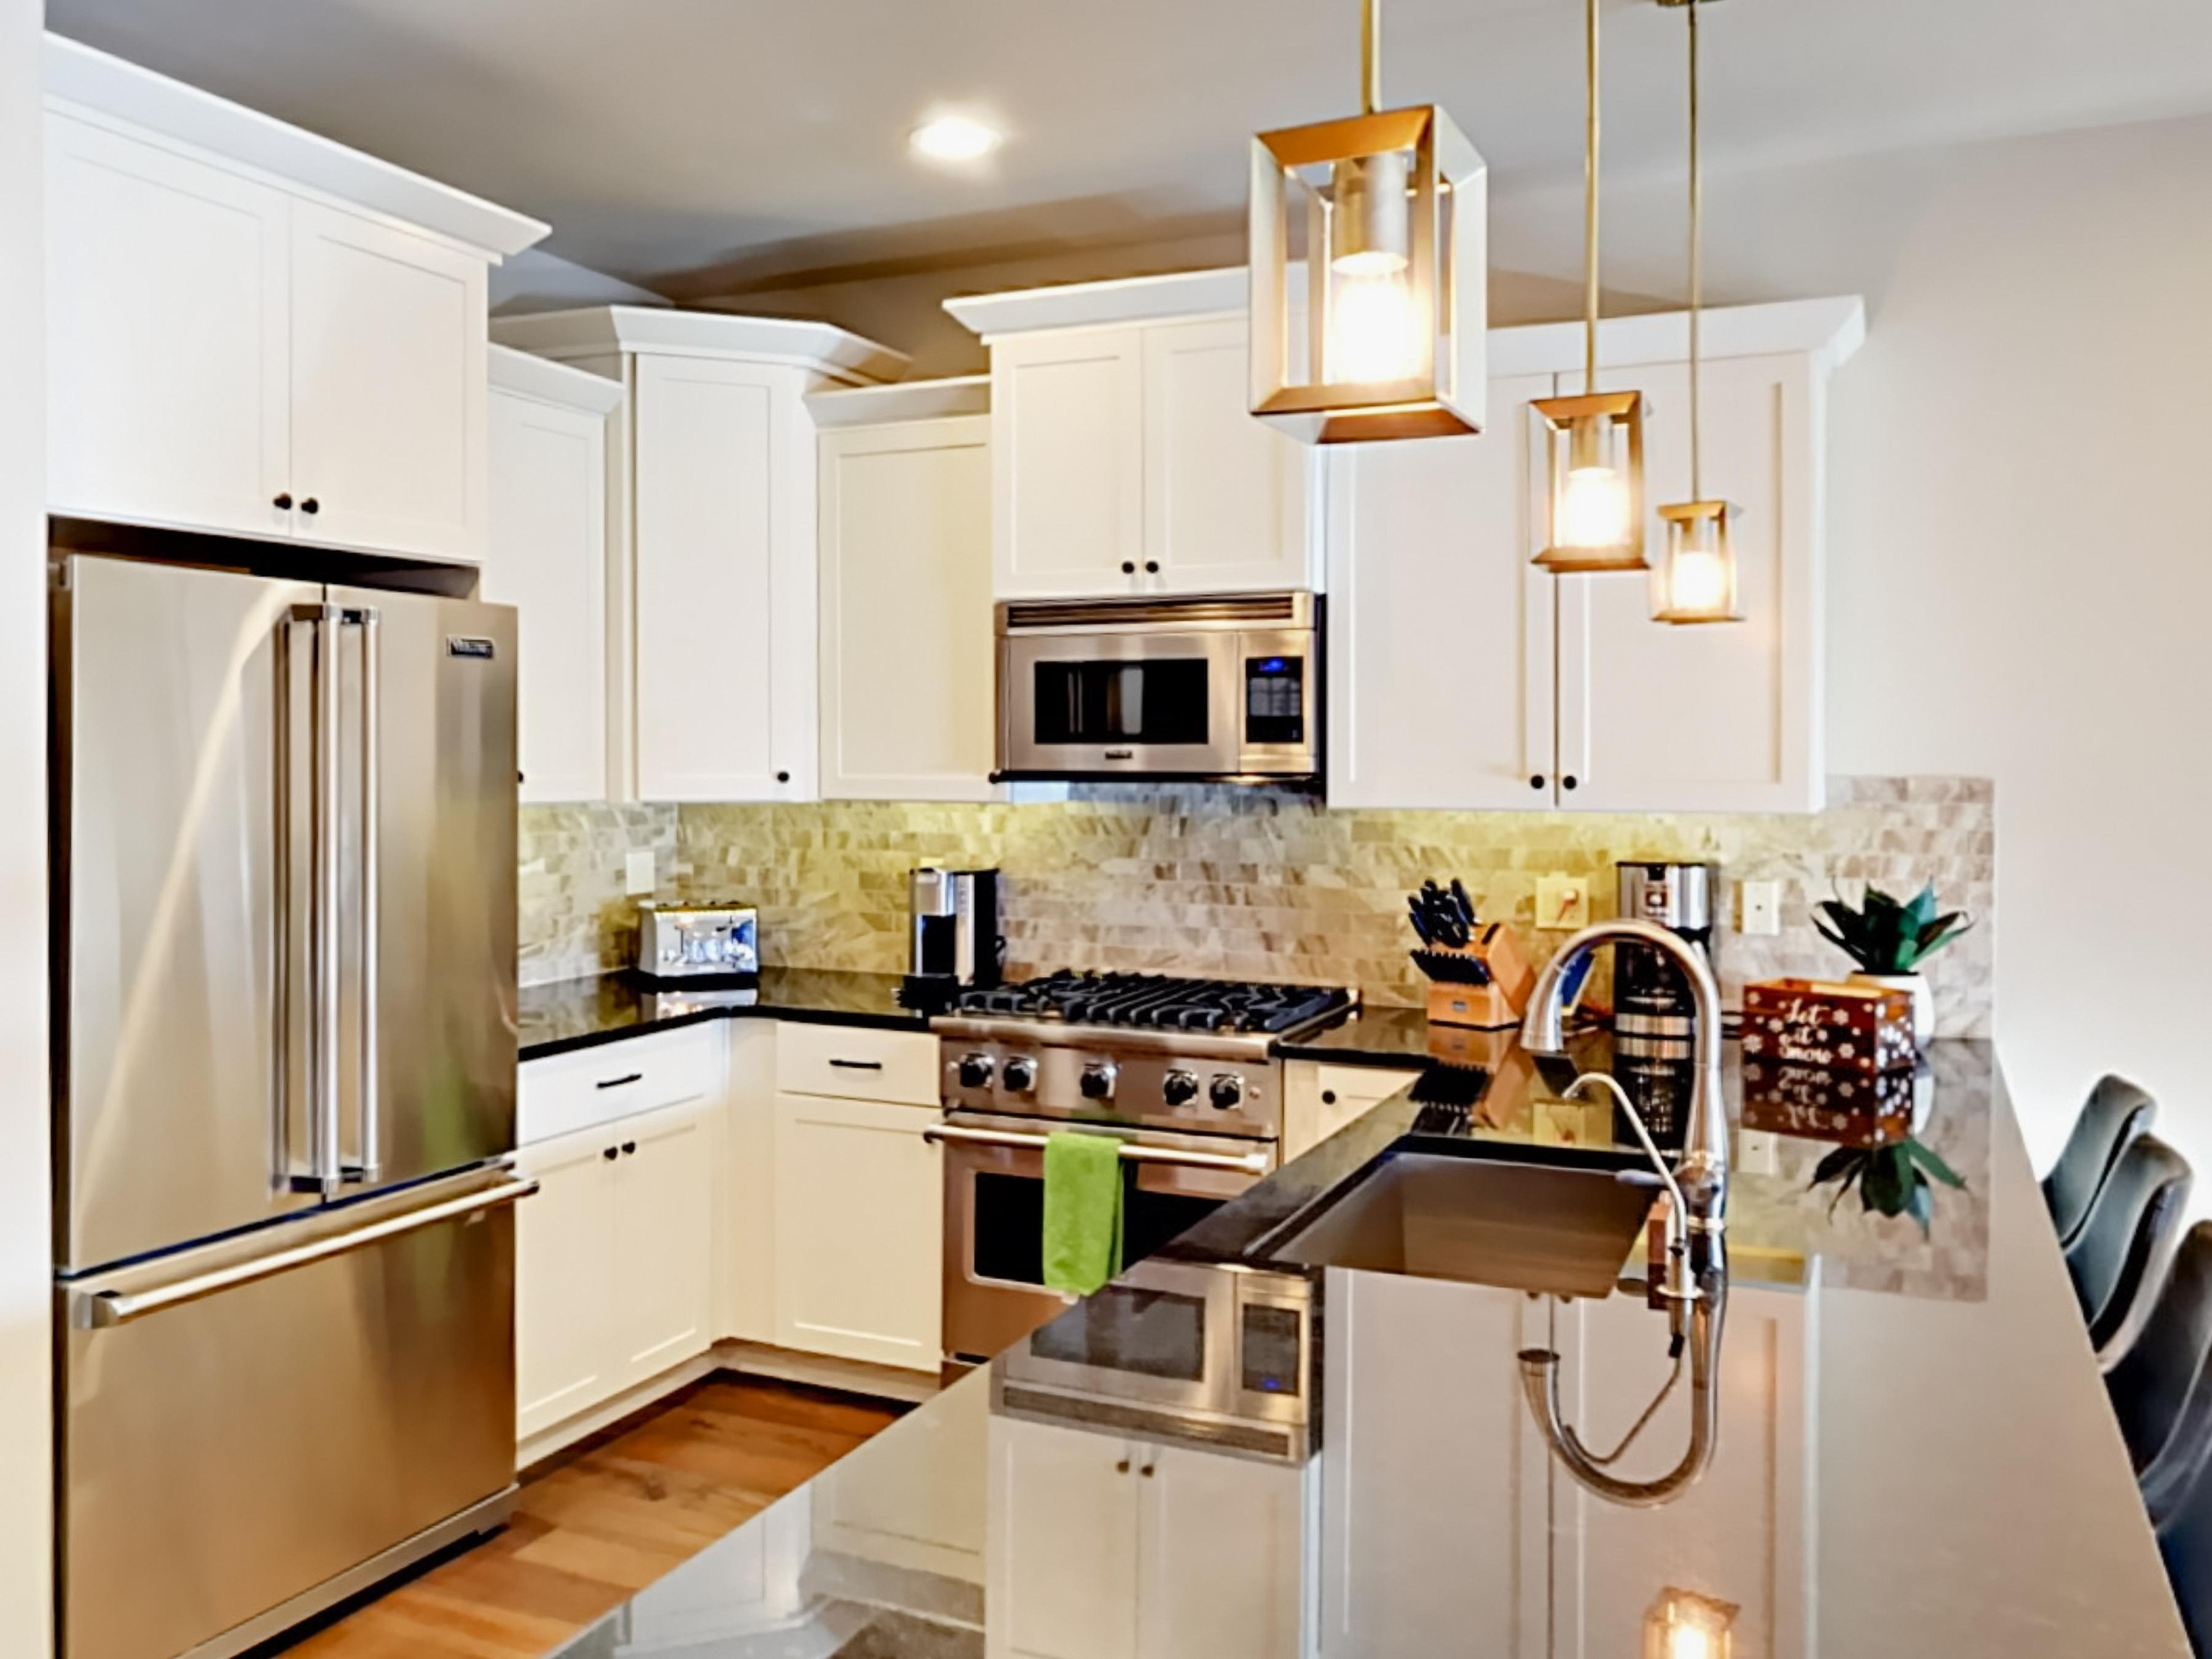 All the essentials can be found in the fully-equipped kitchen with stainless steel Viking appliances and granite countertops.